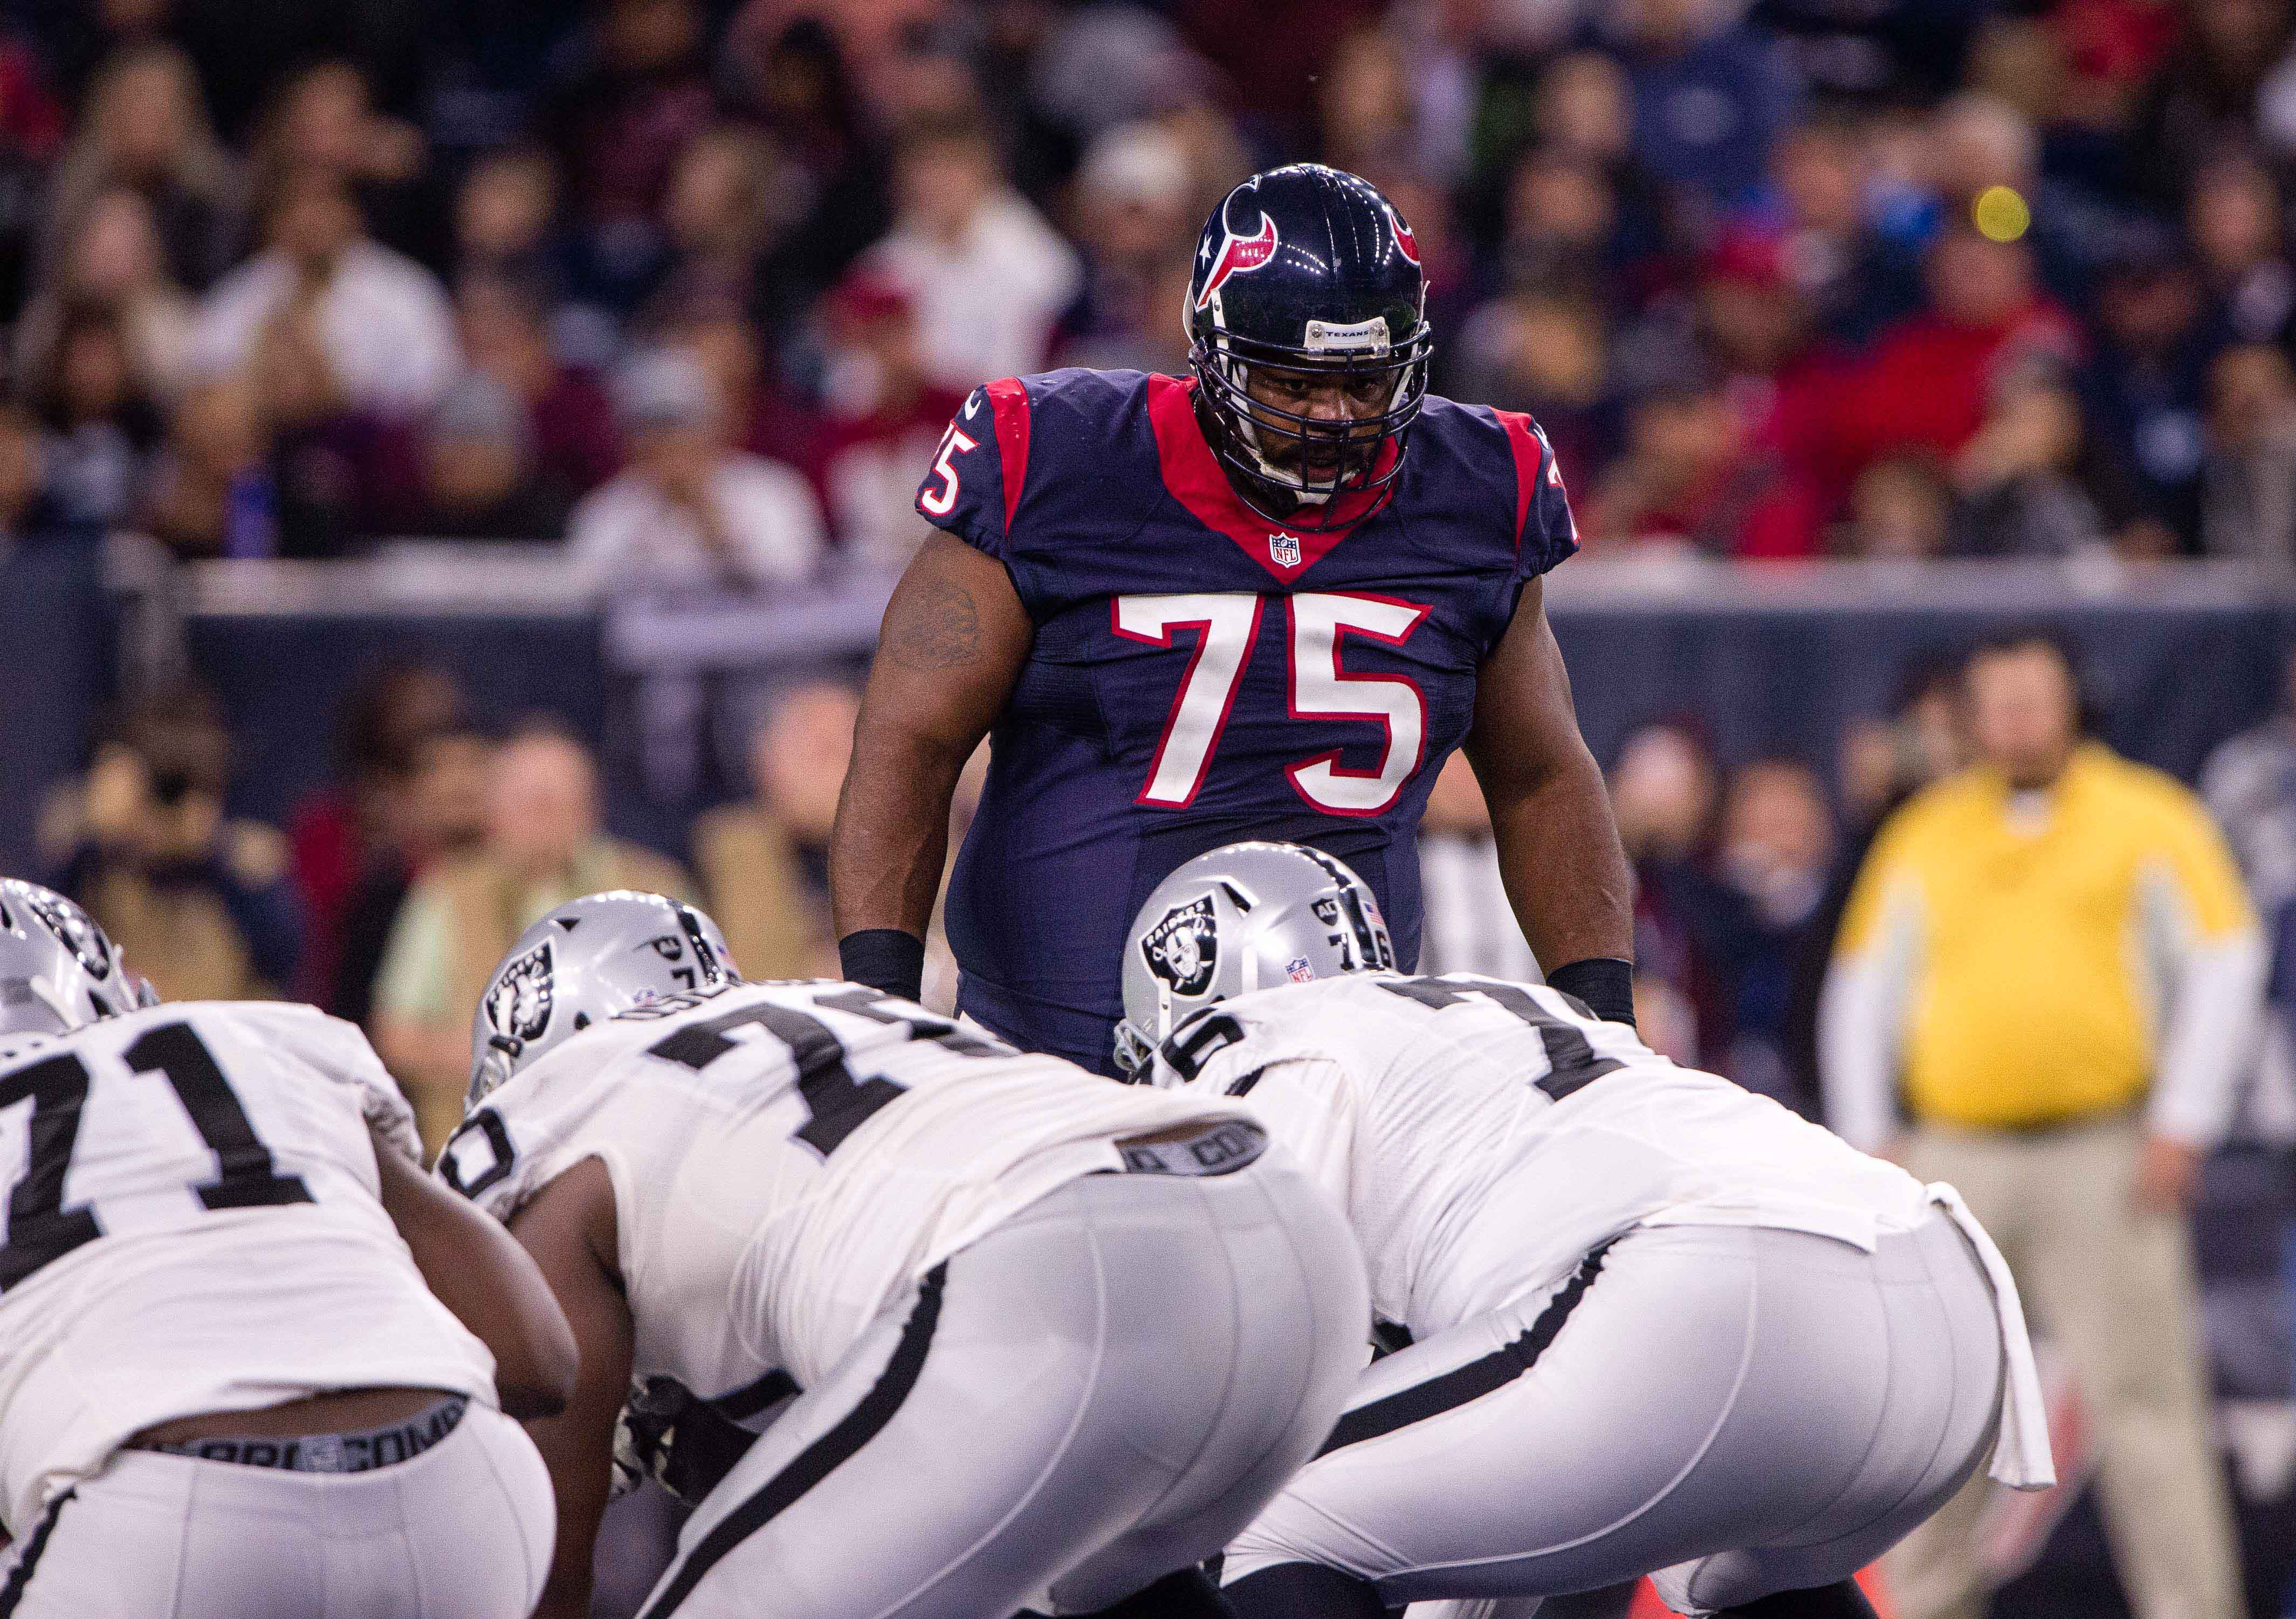 9805491-nfl-afc-wild-card-oakland-raiders-at-houston-texans